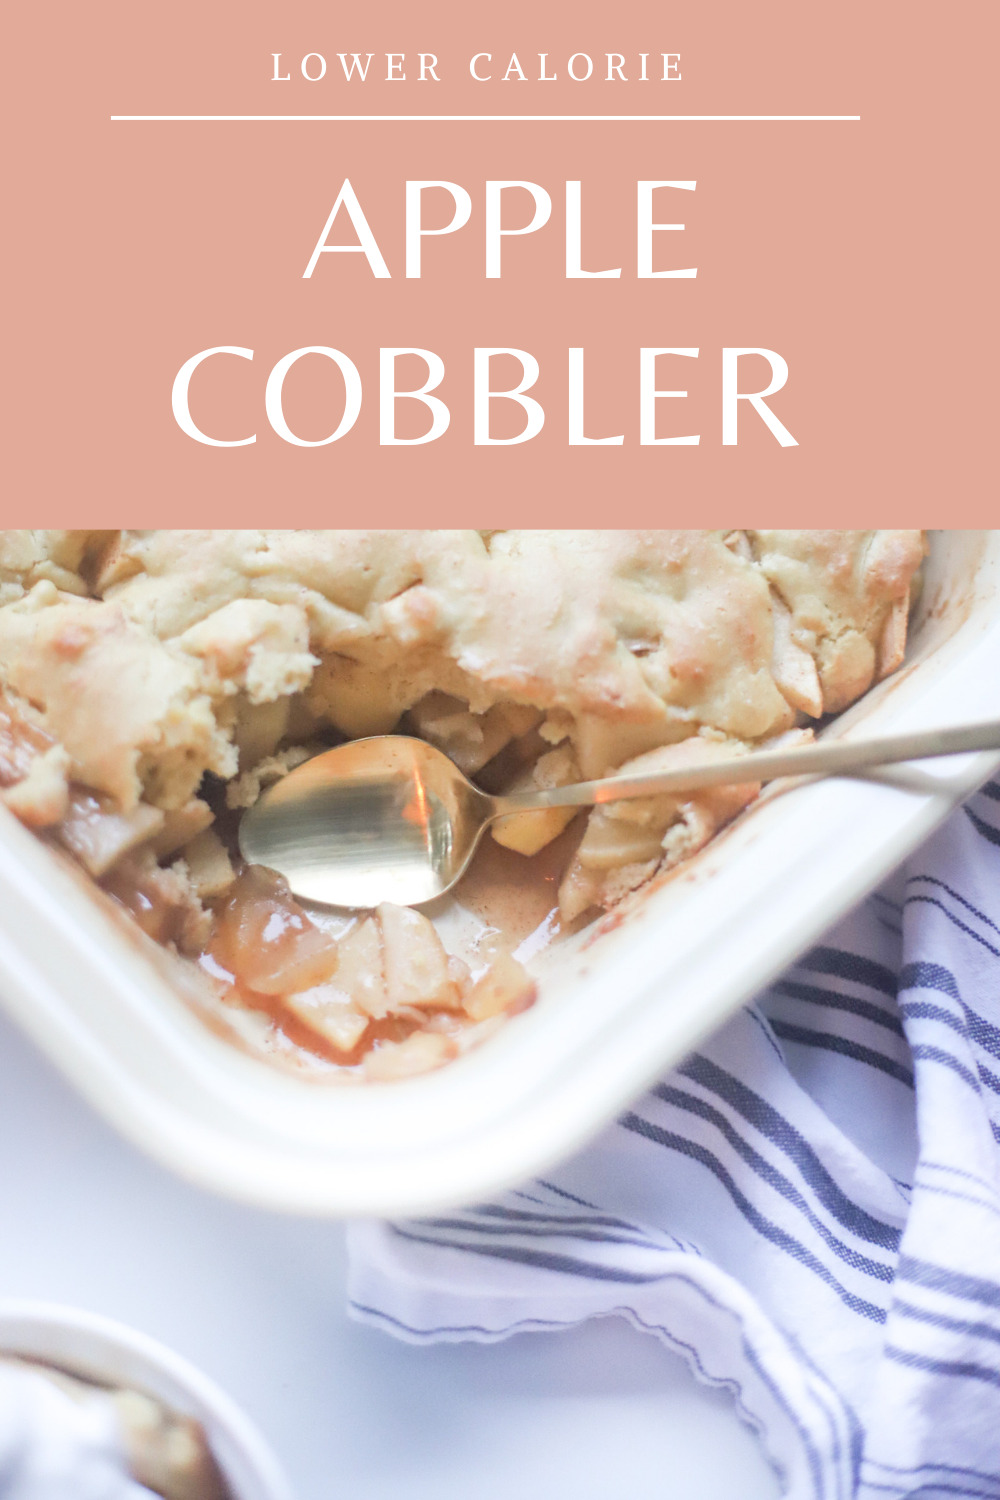 This deceptively delicious apple cobbler is full of cinnamon, fragrant apples, and a velvety caramel sauce, topped with the most heavenly dough, and yet, is actually lower calorie than a traditional cobbler and can also be made dairy-free! Click through for the fall recipe.   @glitterinclexi   GLITTERINC.COM